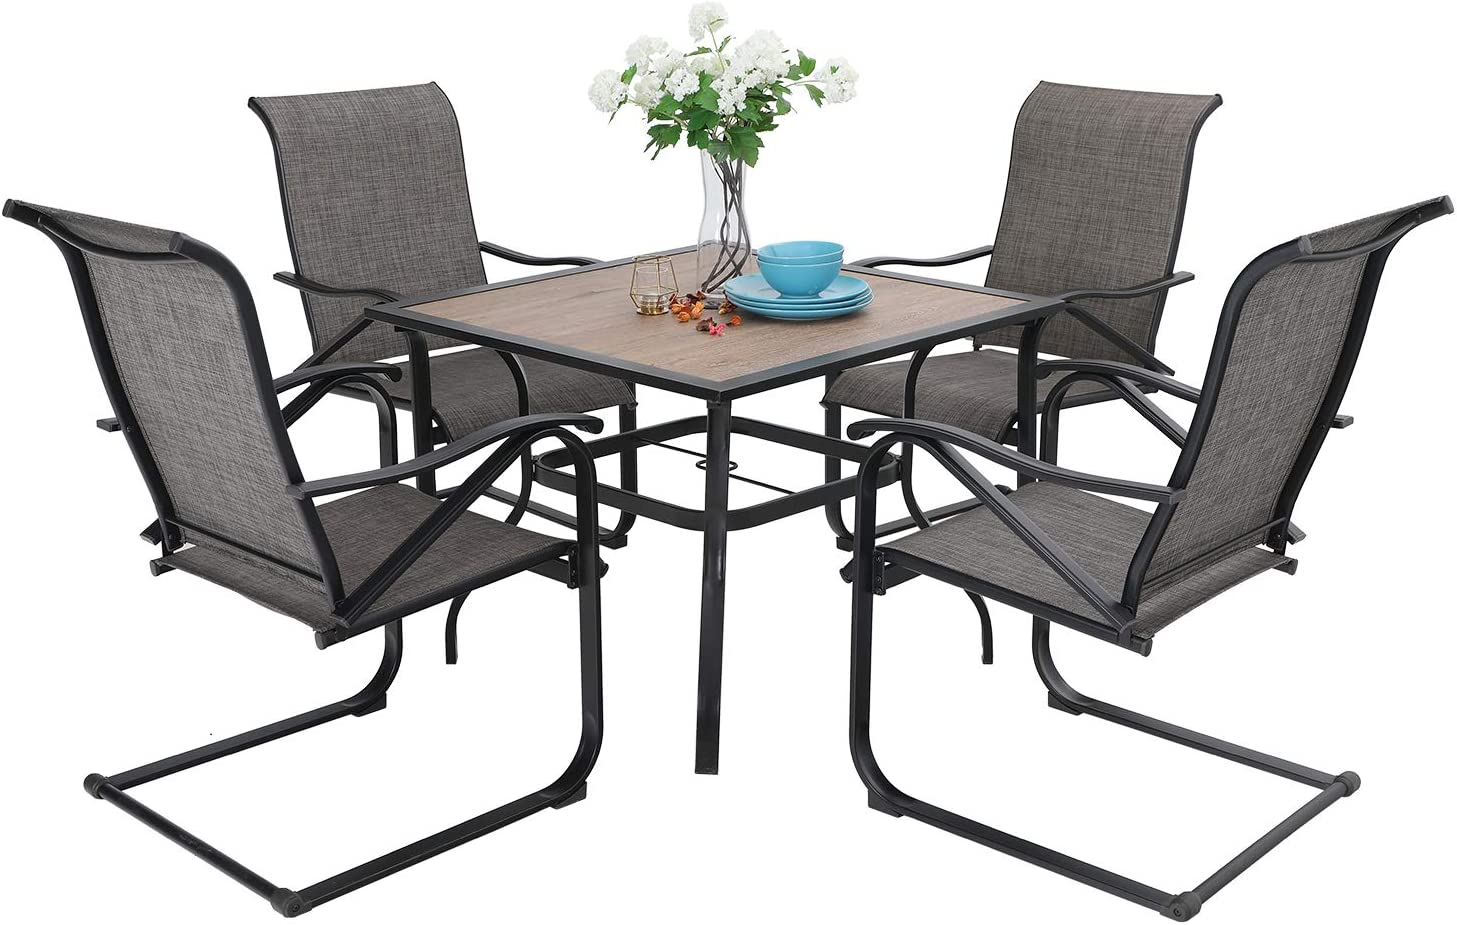 "Sophia & William Patio Dining Set, 4 x C Spring Motion Chairs Furniture Set,1 Square 37""x 37"" Wood Like Umbrella Table for Outdoor Lawn Garden Pool Metal Frame Easy to Care Weather Resistant"